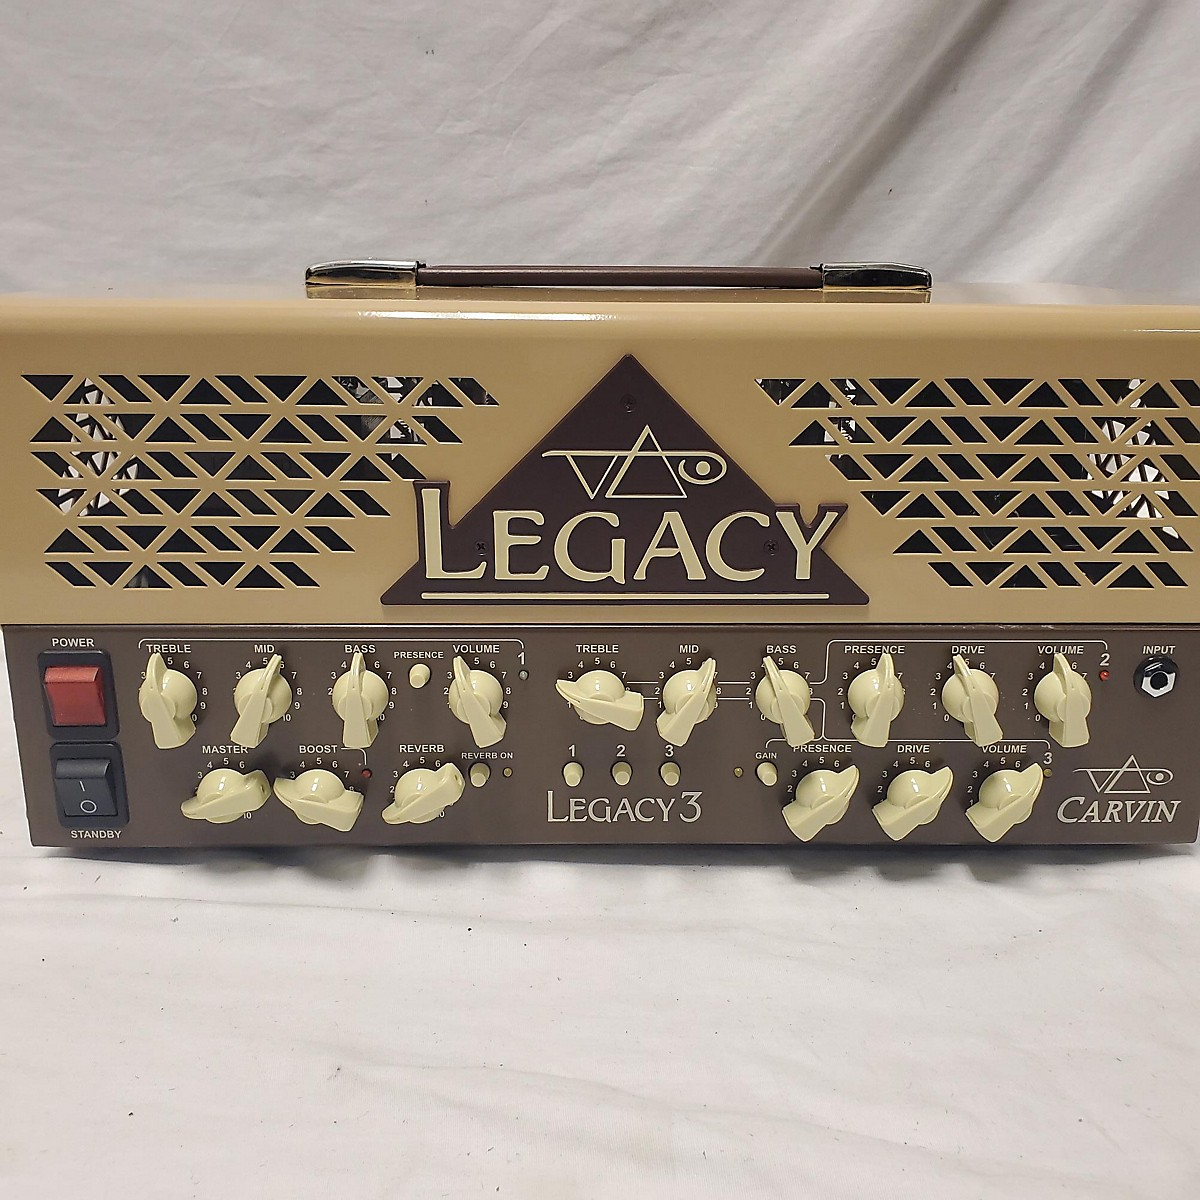 Carvin LEGACY 3 Tube Guitar Amp Head